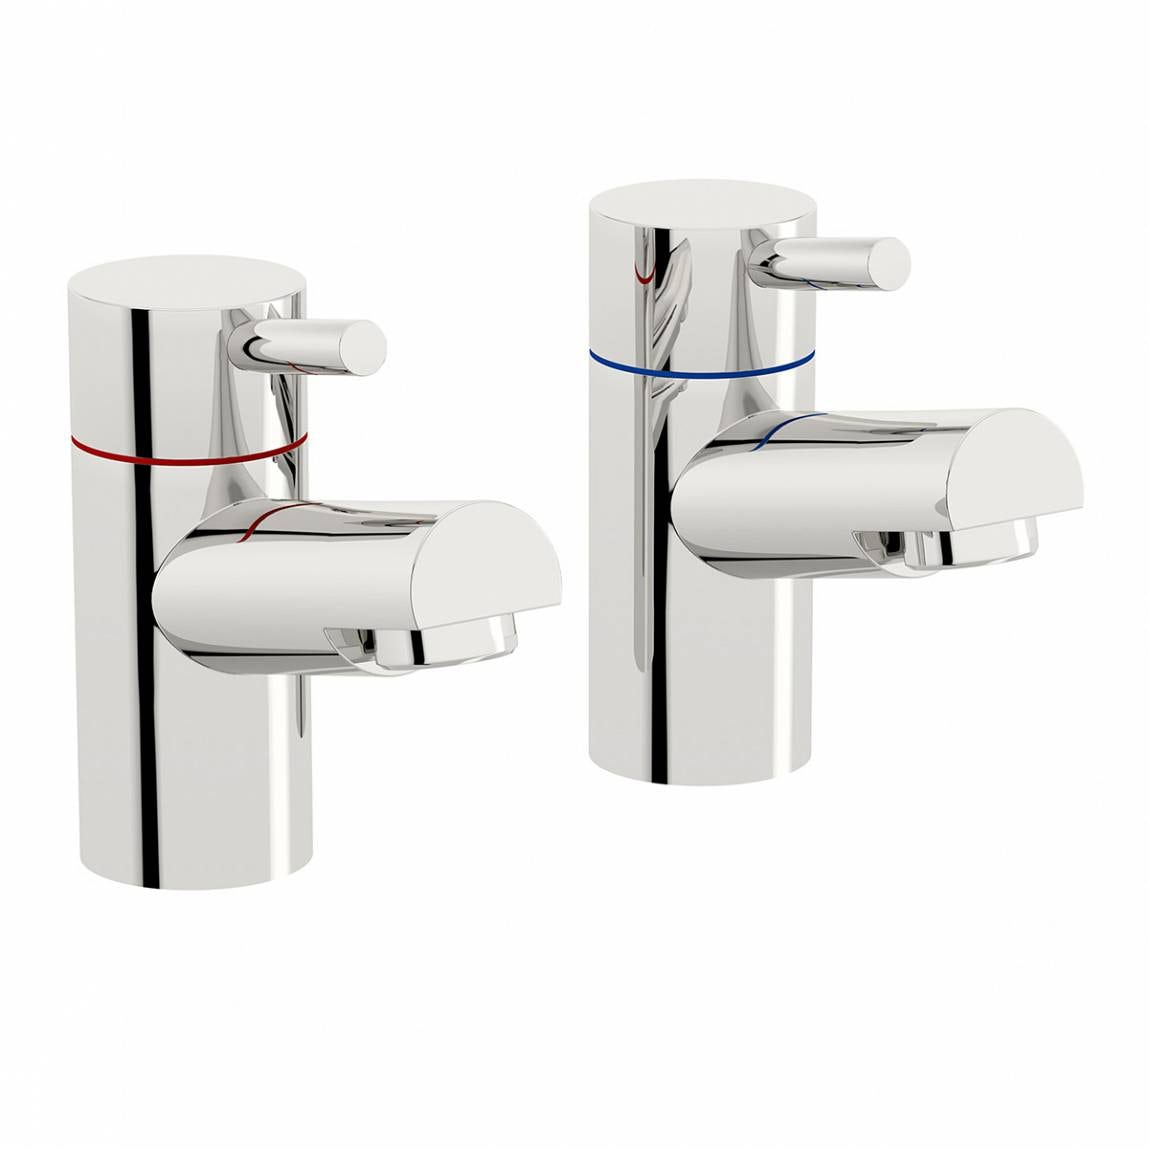 Orchard Wharfe basin pillar taps offer pack